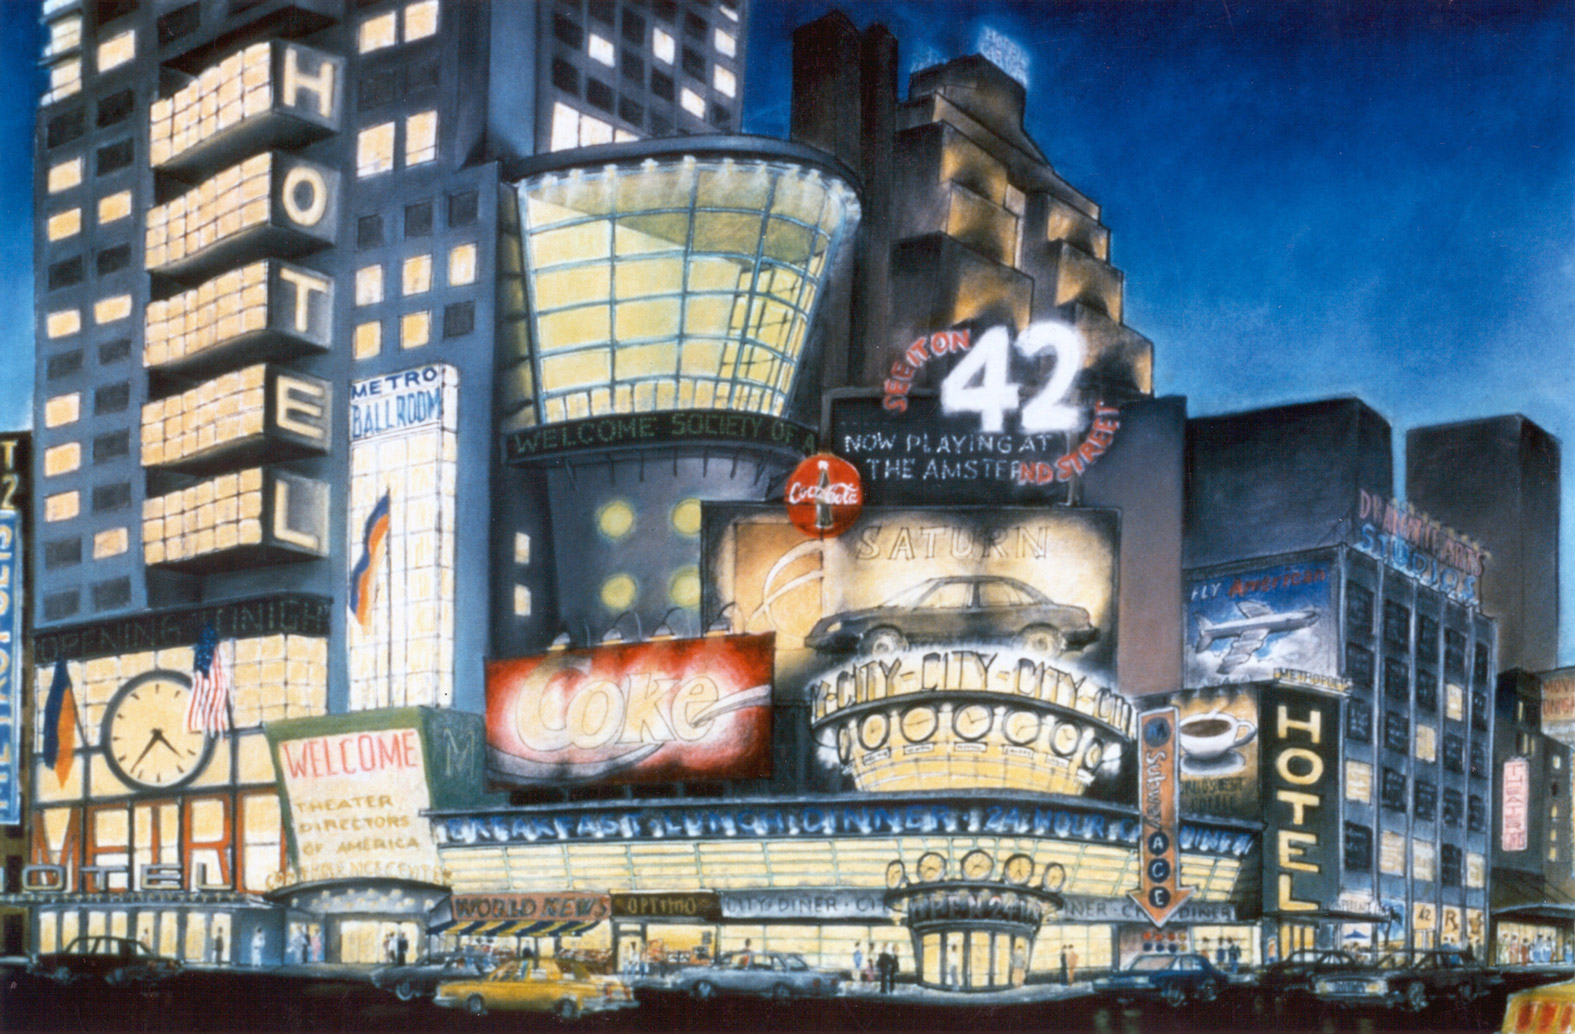 Design vision for 42nd Street, on the southwest corner of 42nd and 7th Avenues. The site that would eventually be developed into what is today Five Times Square. Credit: Robert A.M. Stern Architects